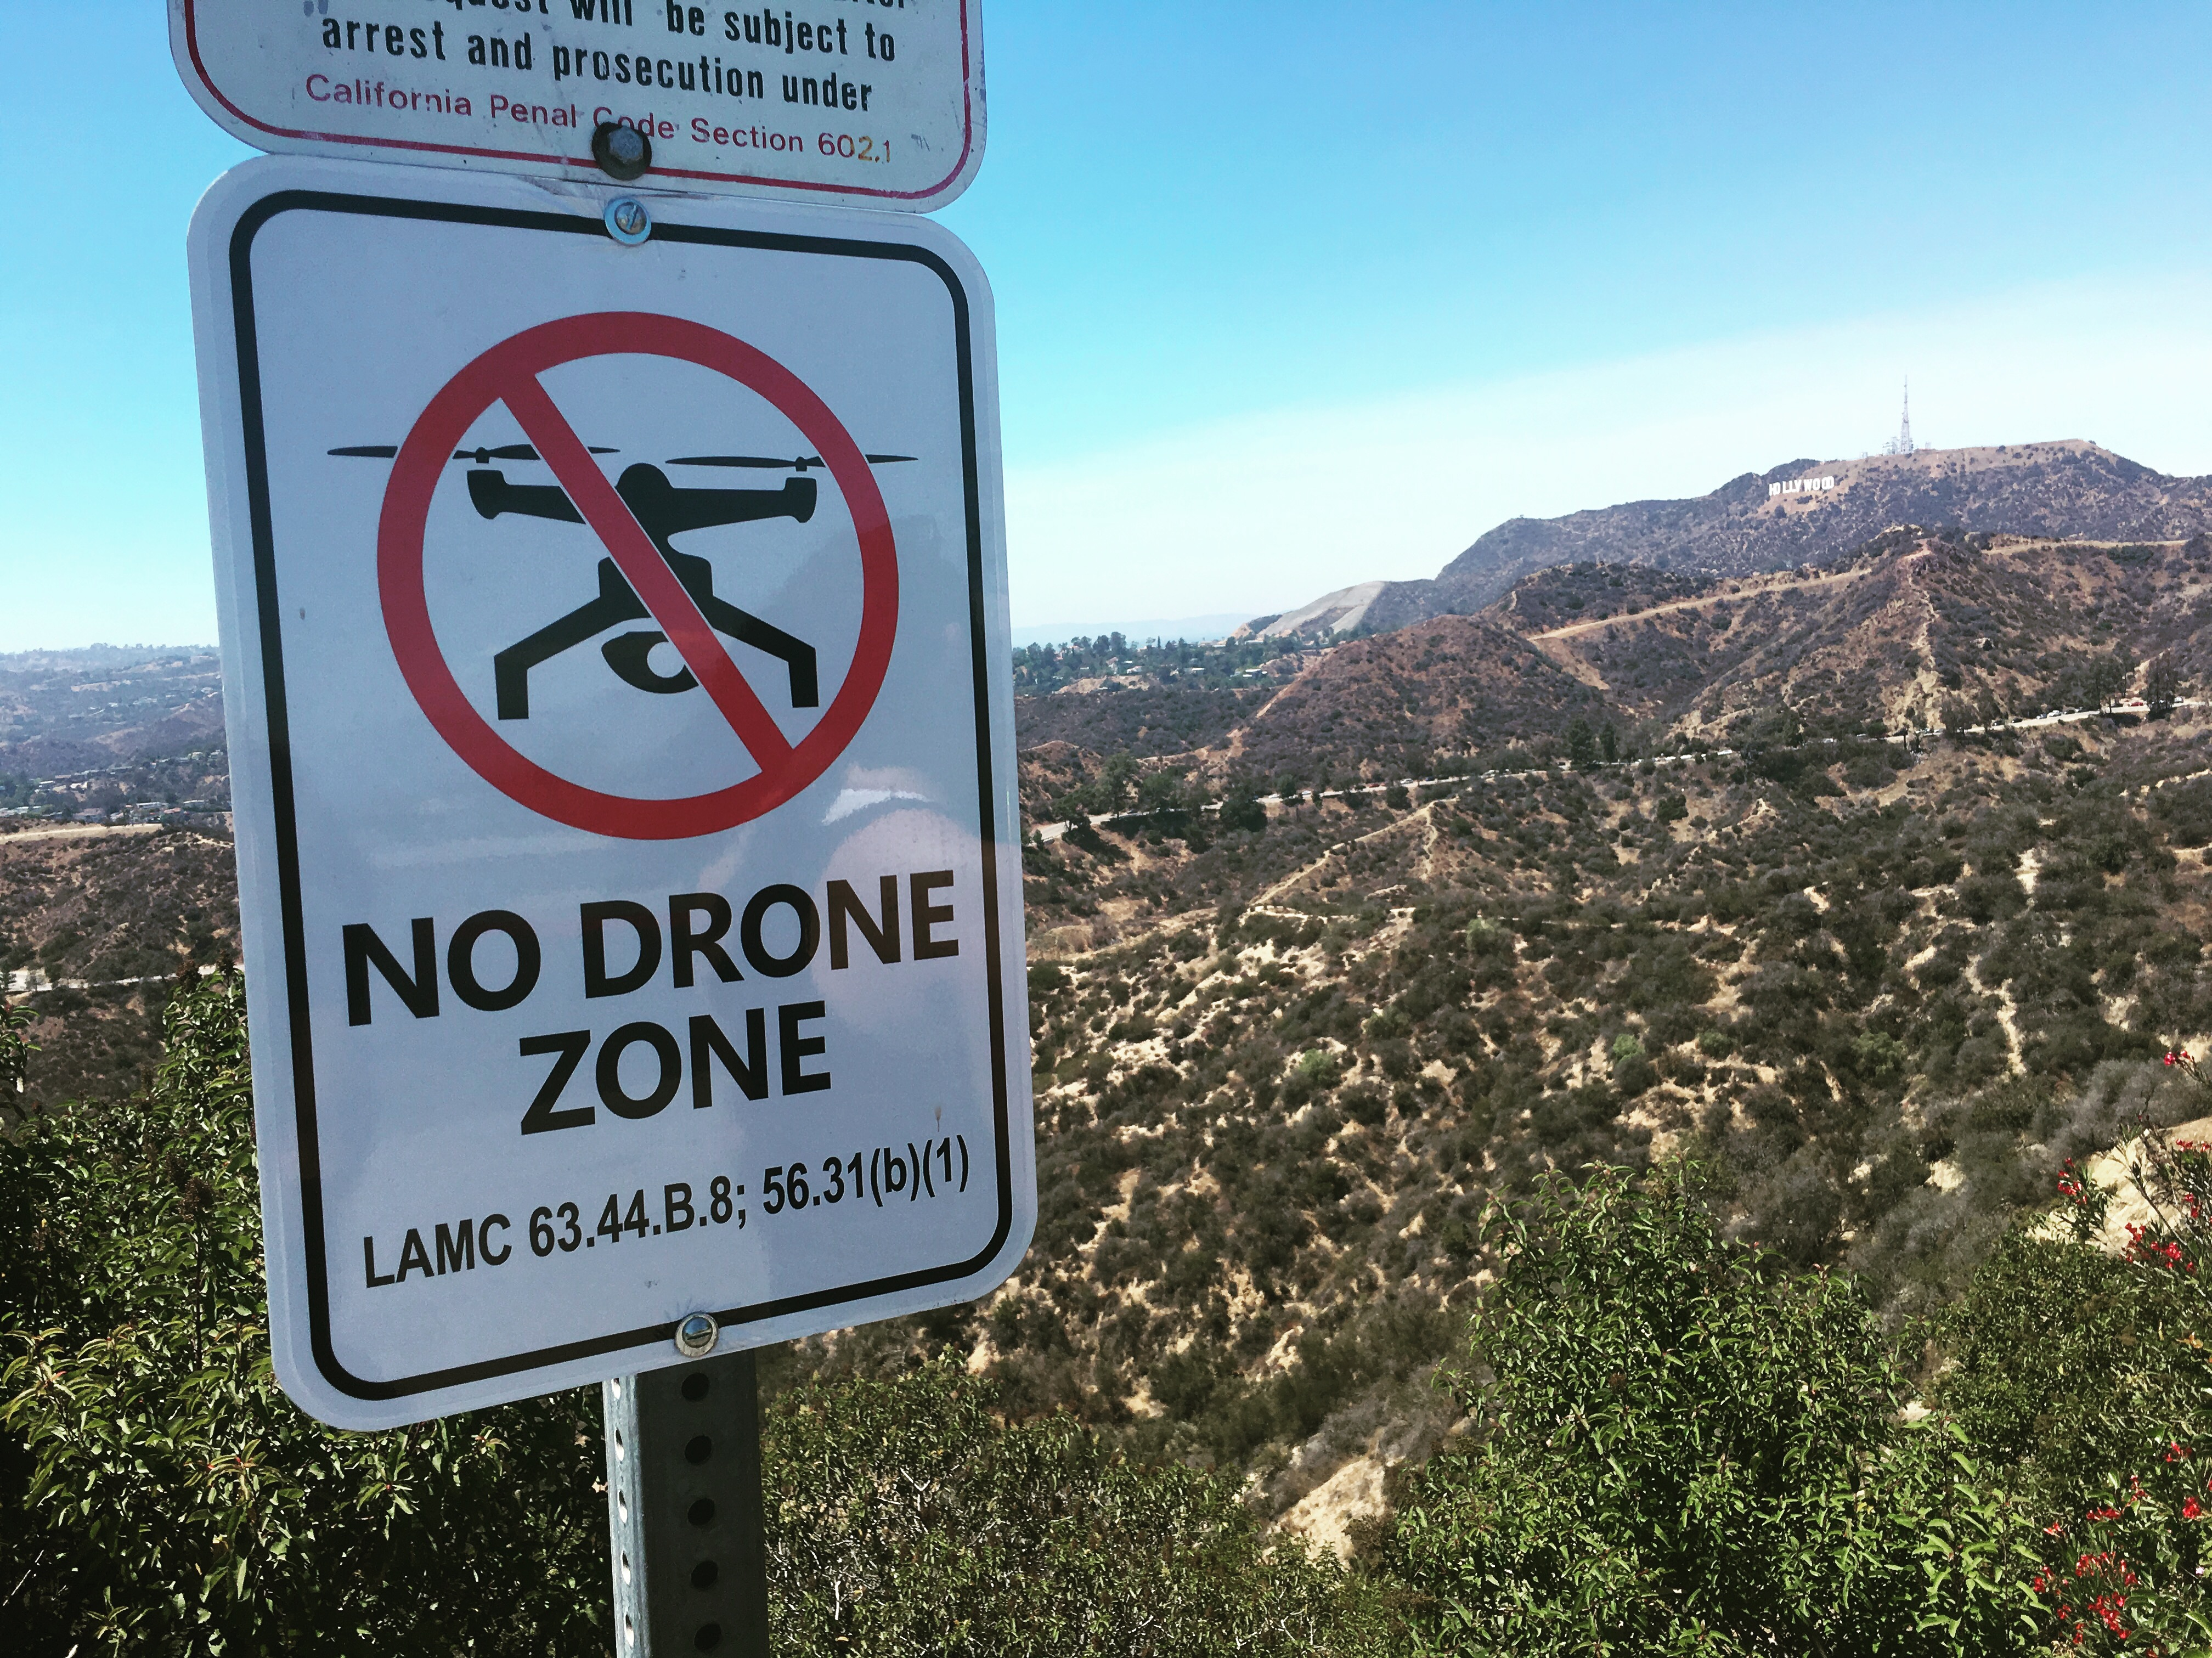 Russian Hackers Disable DJI Drone No Fly Zone Feature | cinema5D